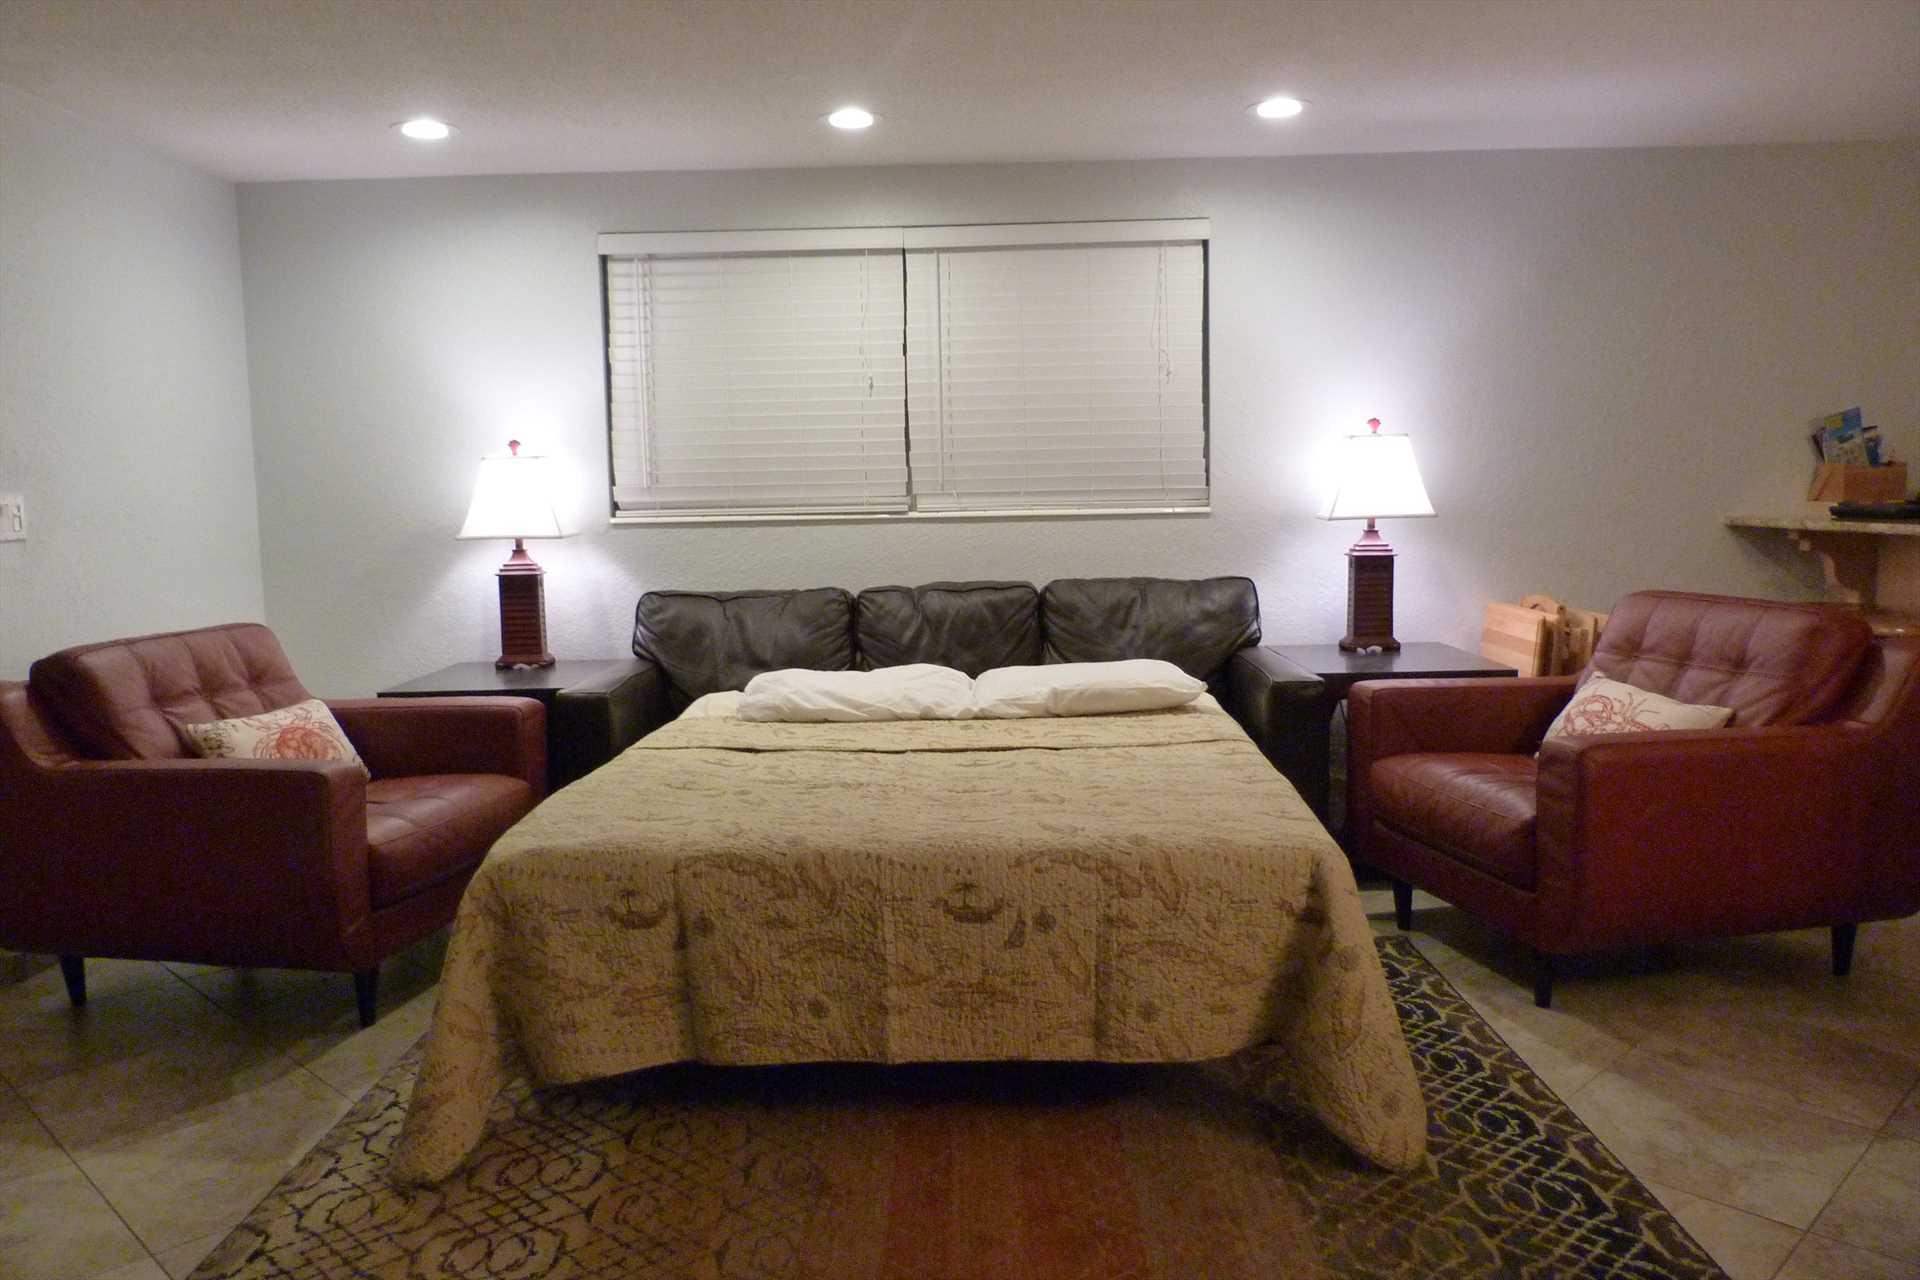 Sofa converts to a queen bed